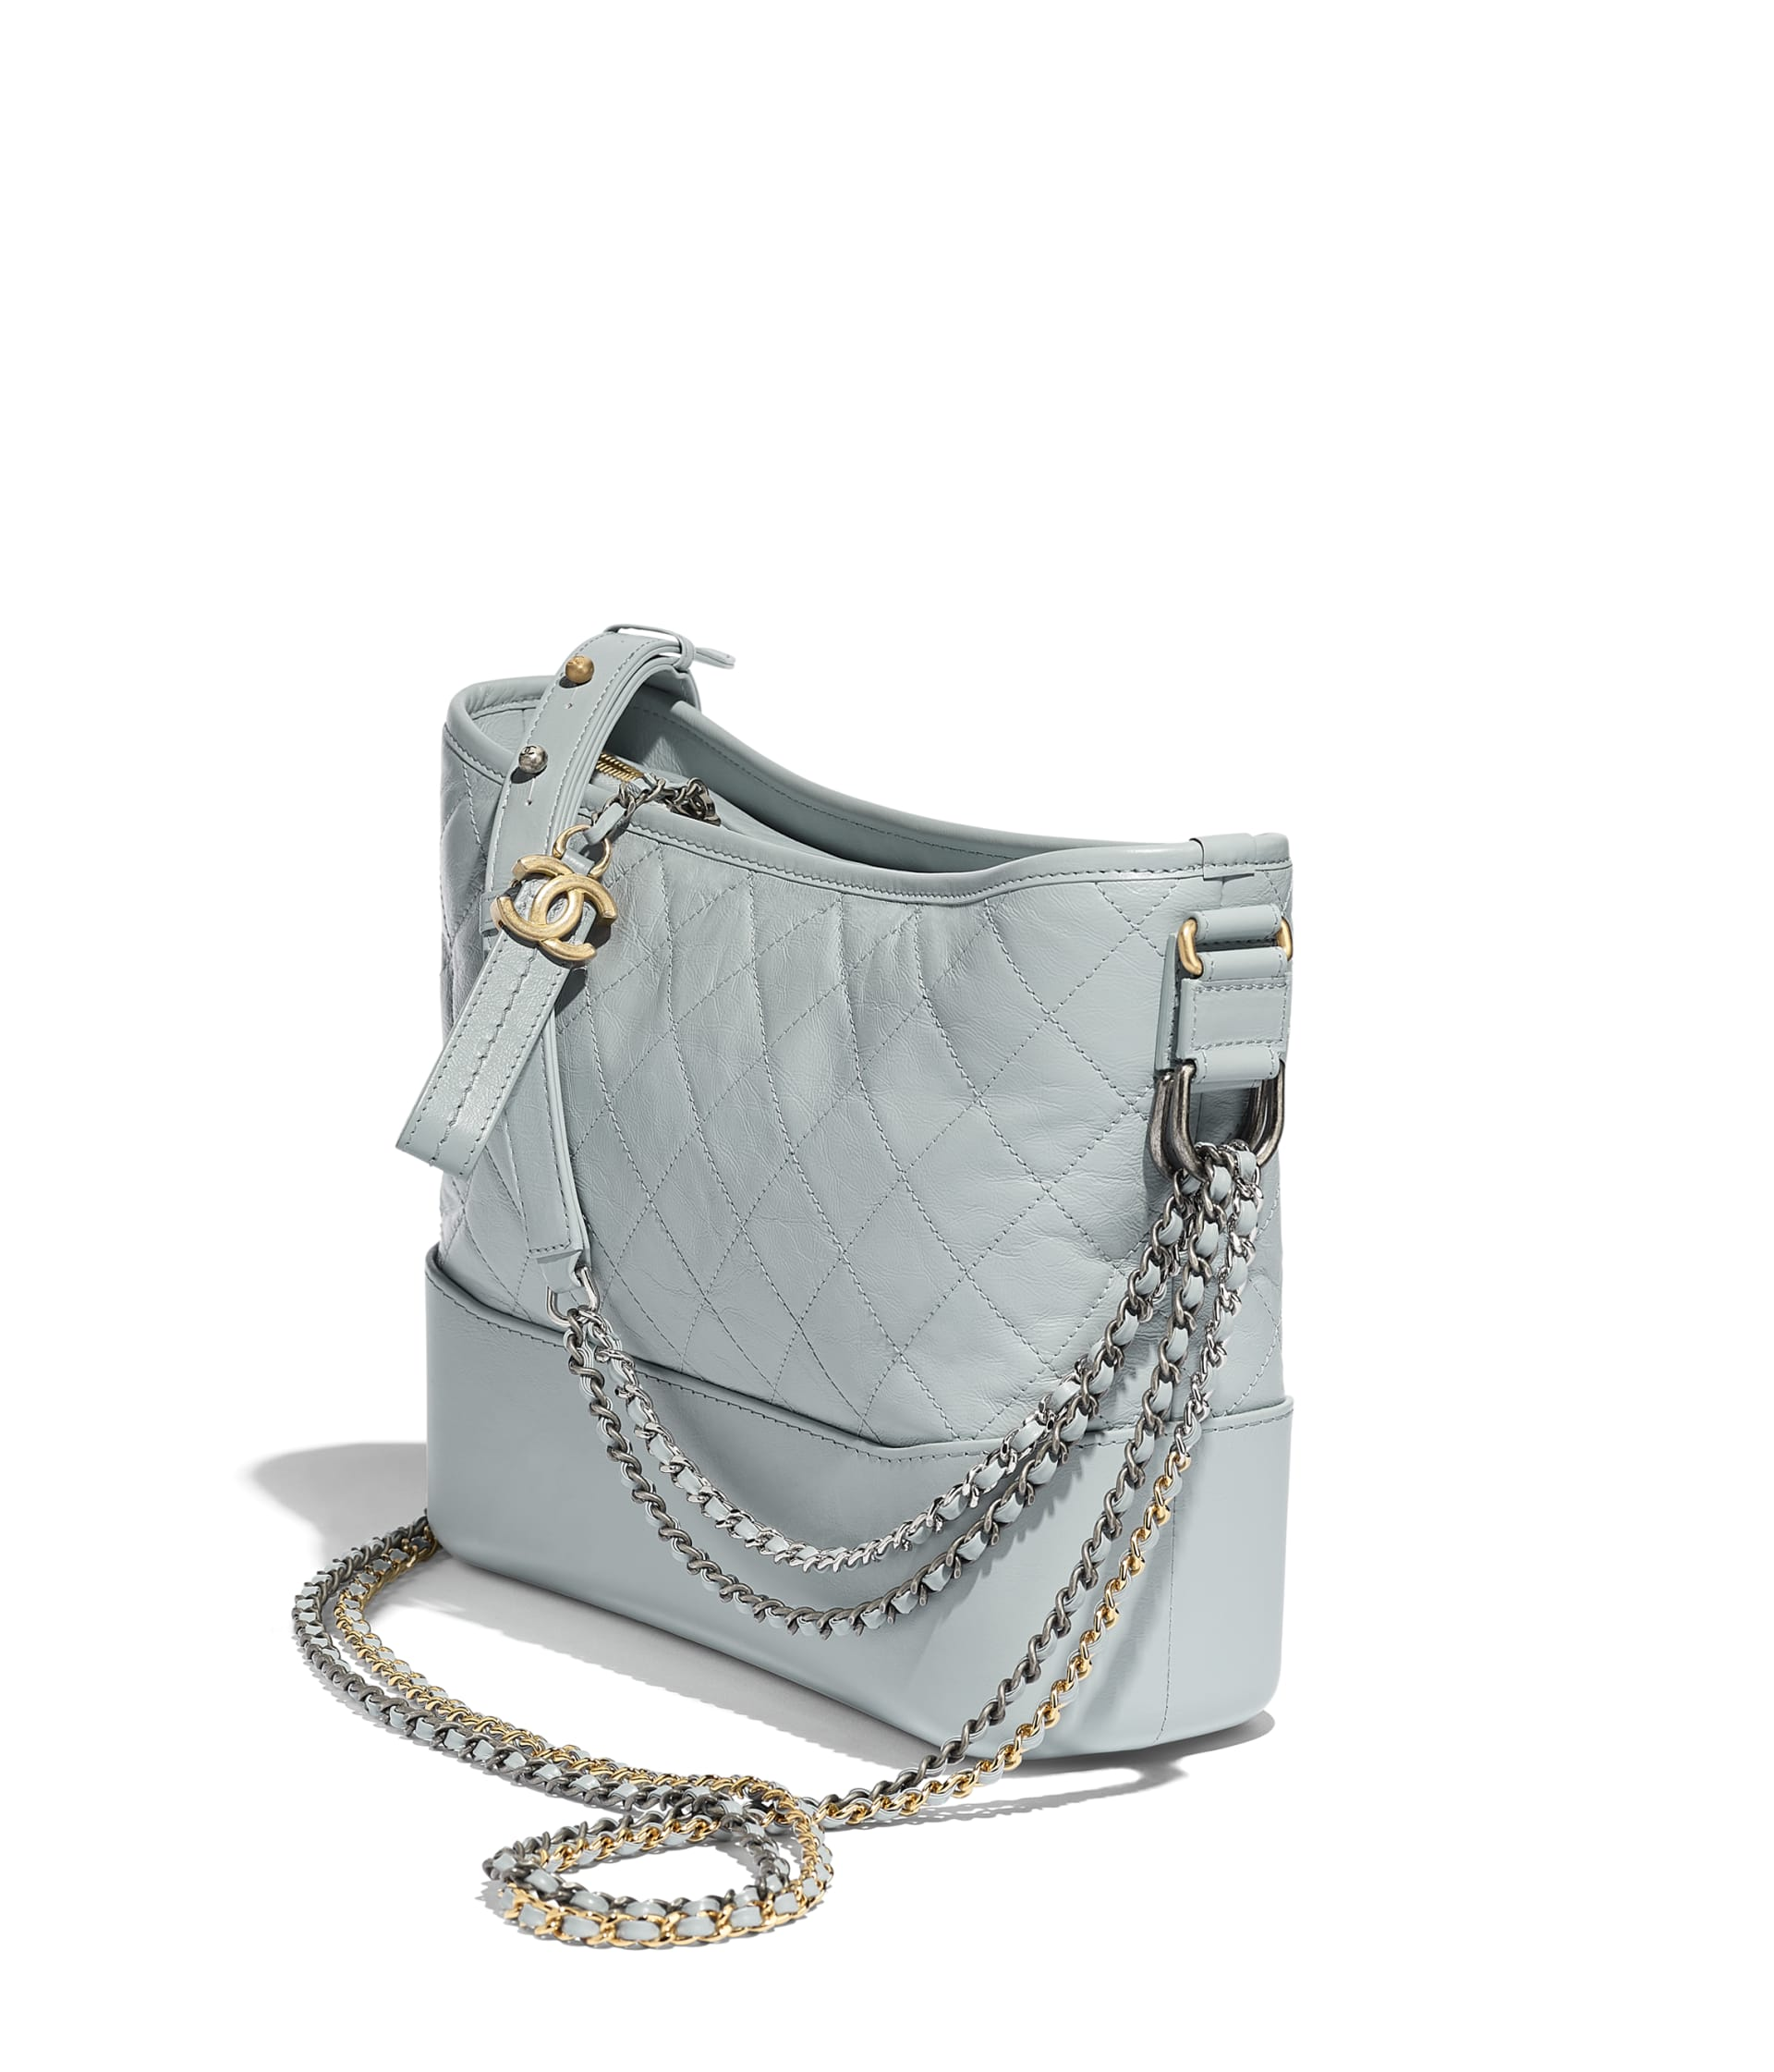 image 3 - CHANEL'S GABRIELLE  Large Hobo Bag - Aged Calfskin, Smooth Calfskin, Gold-Tone, Silver-Tone & Ruthenium-Finish Metal - Light Blue & Turquoise